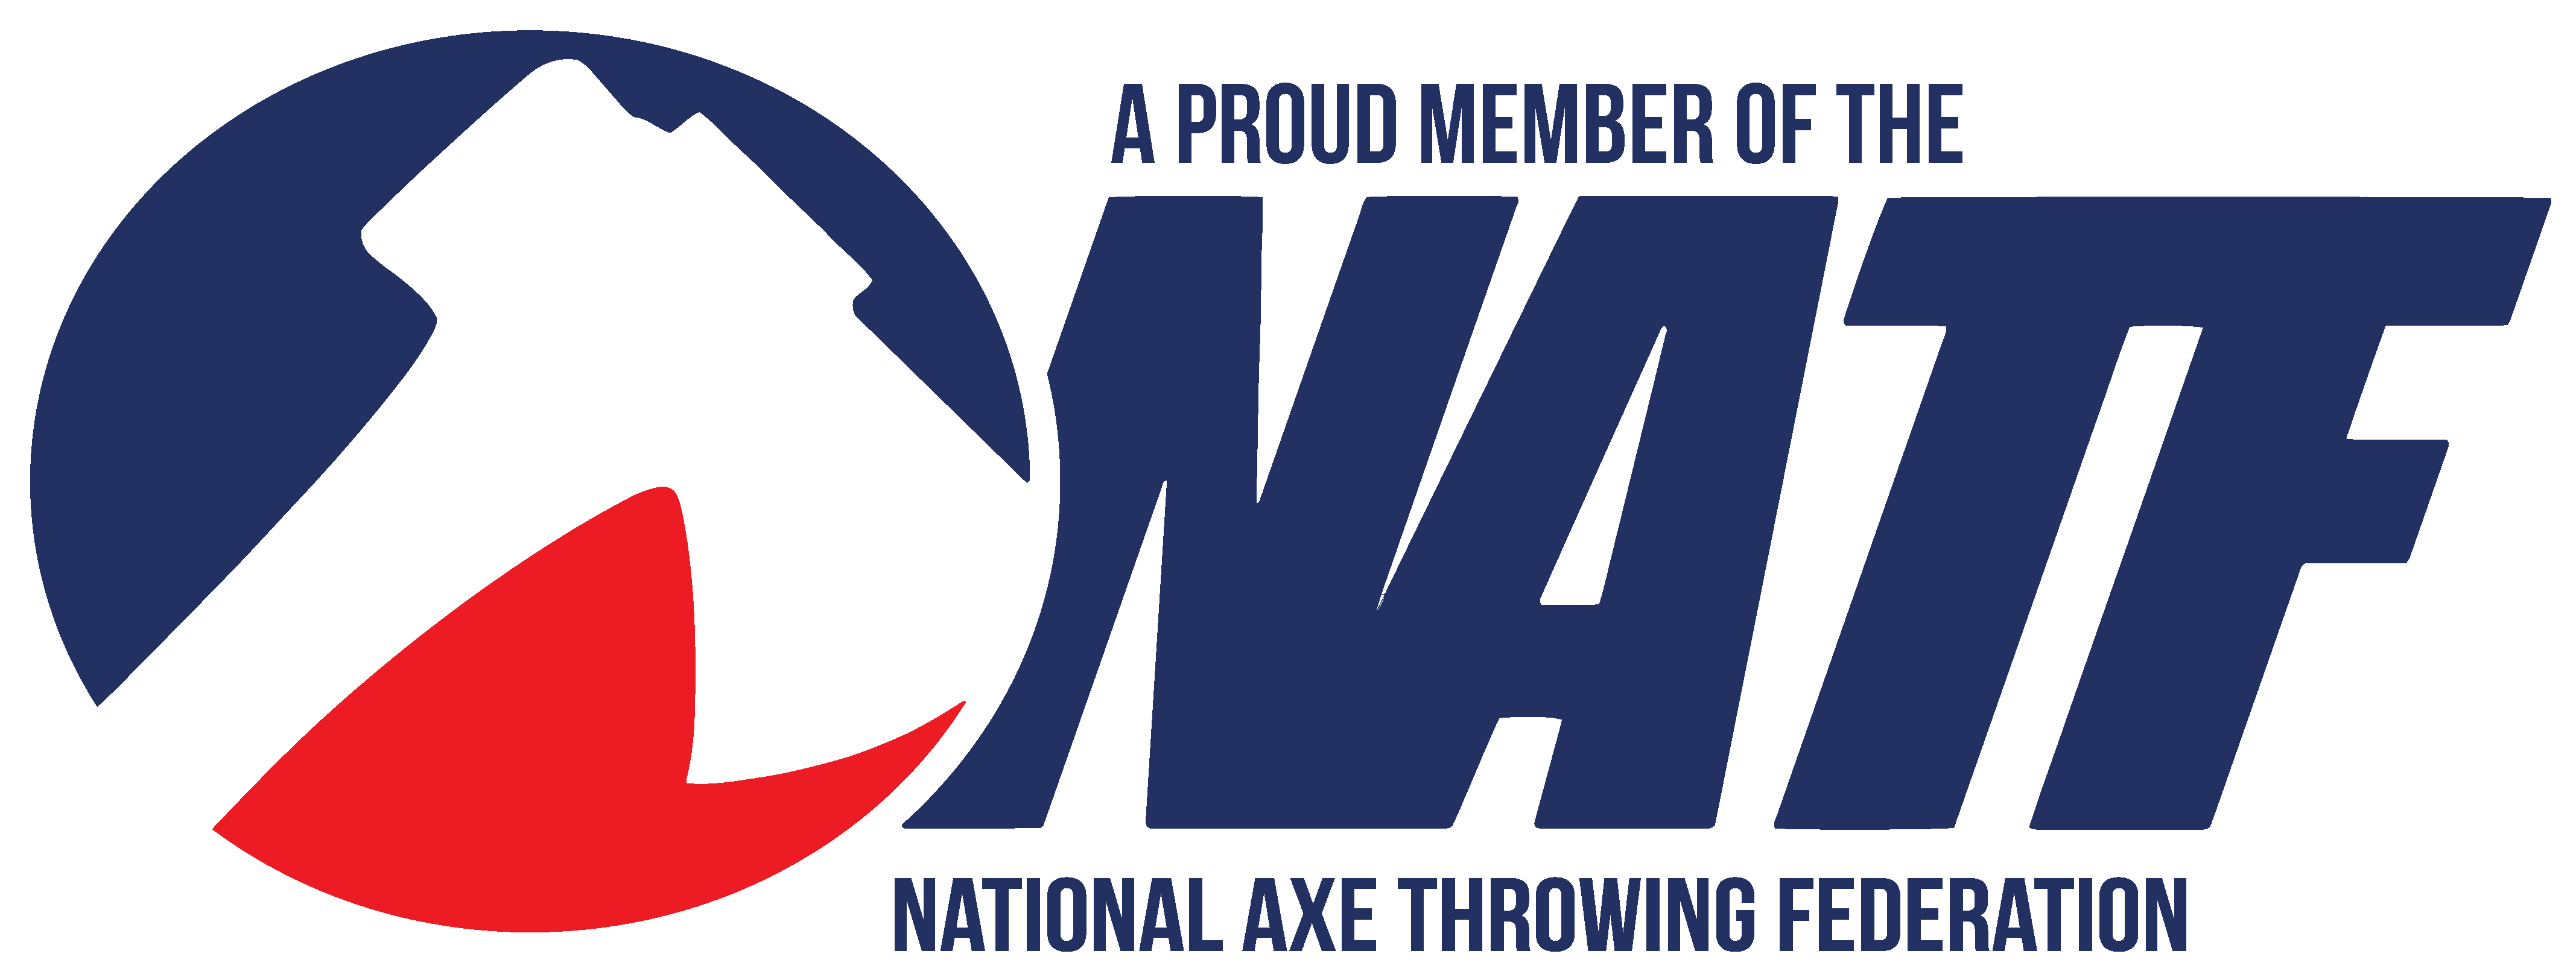 A Proud Member of the National Axe Throwing Federation